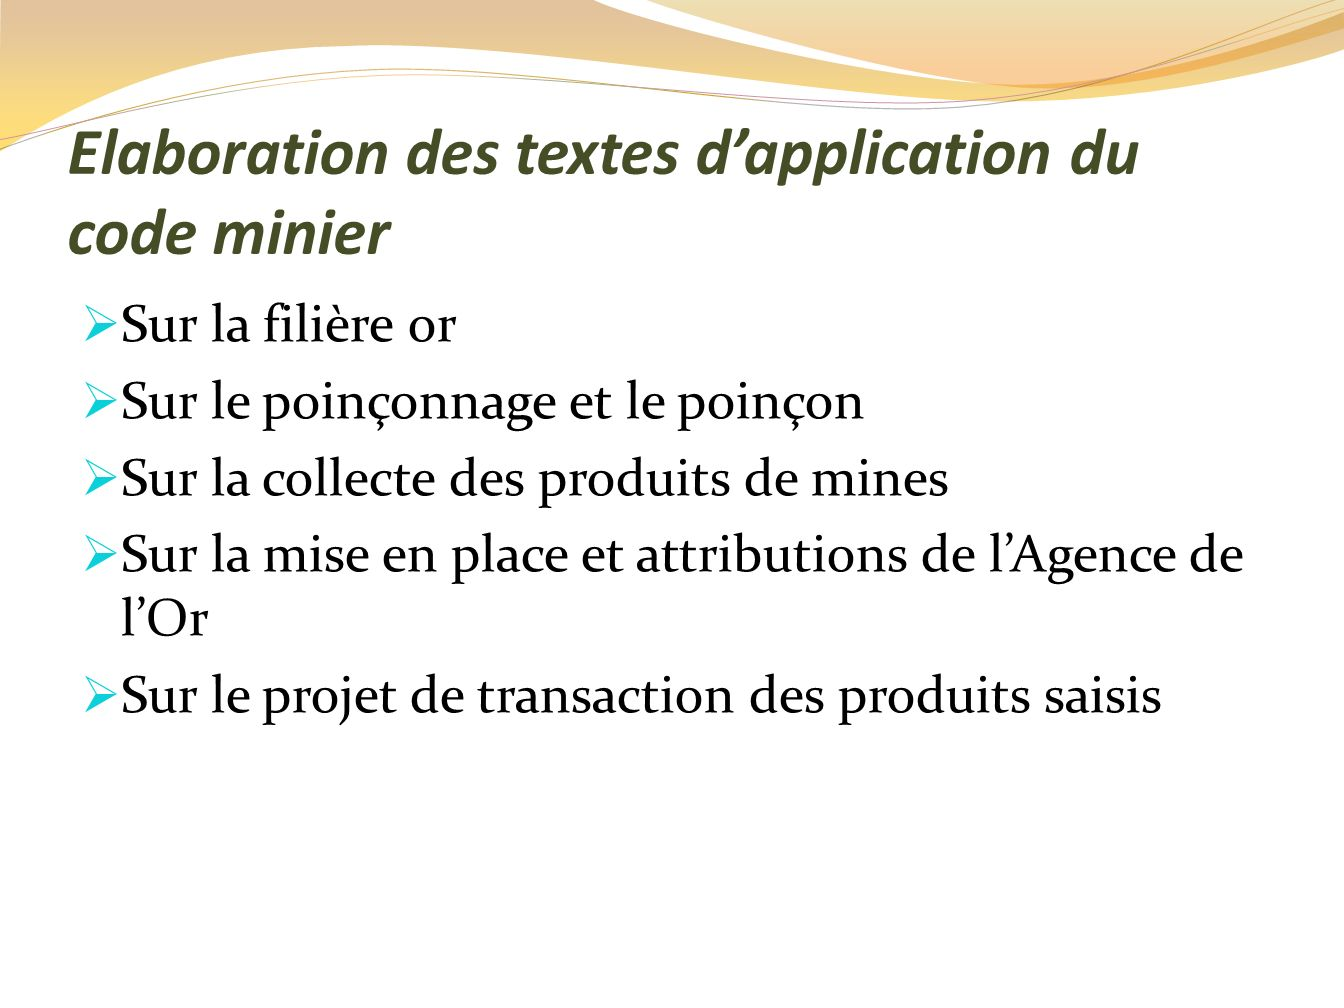 Elaboration des textes d'application du code minier